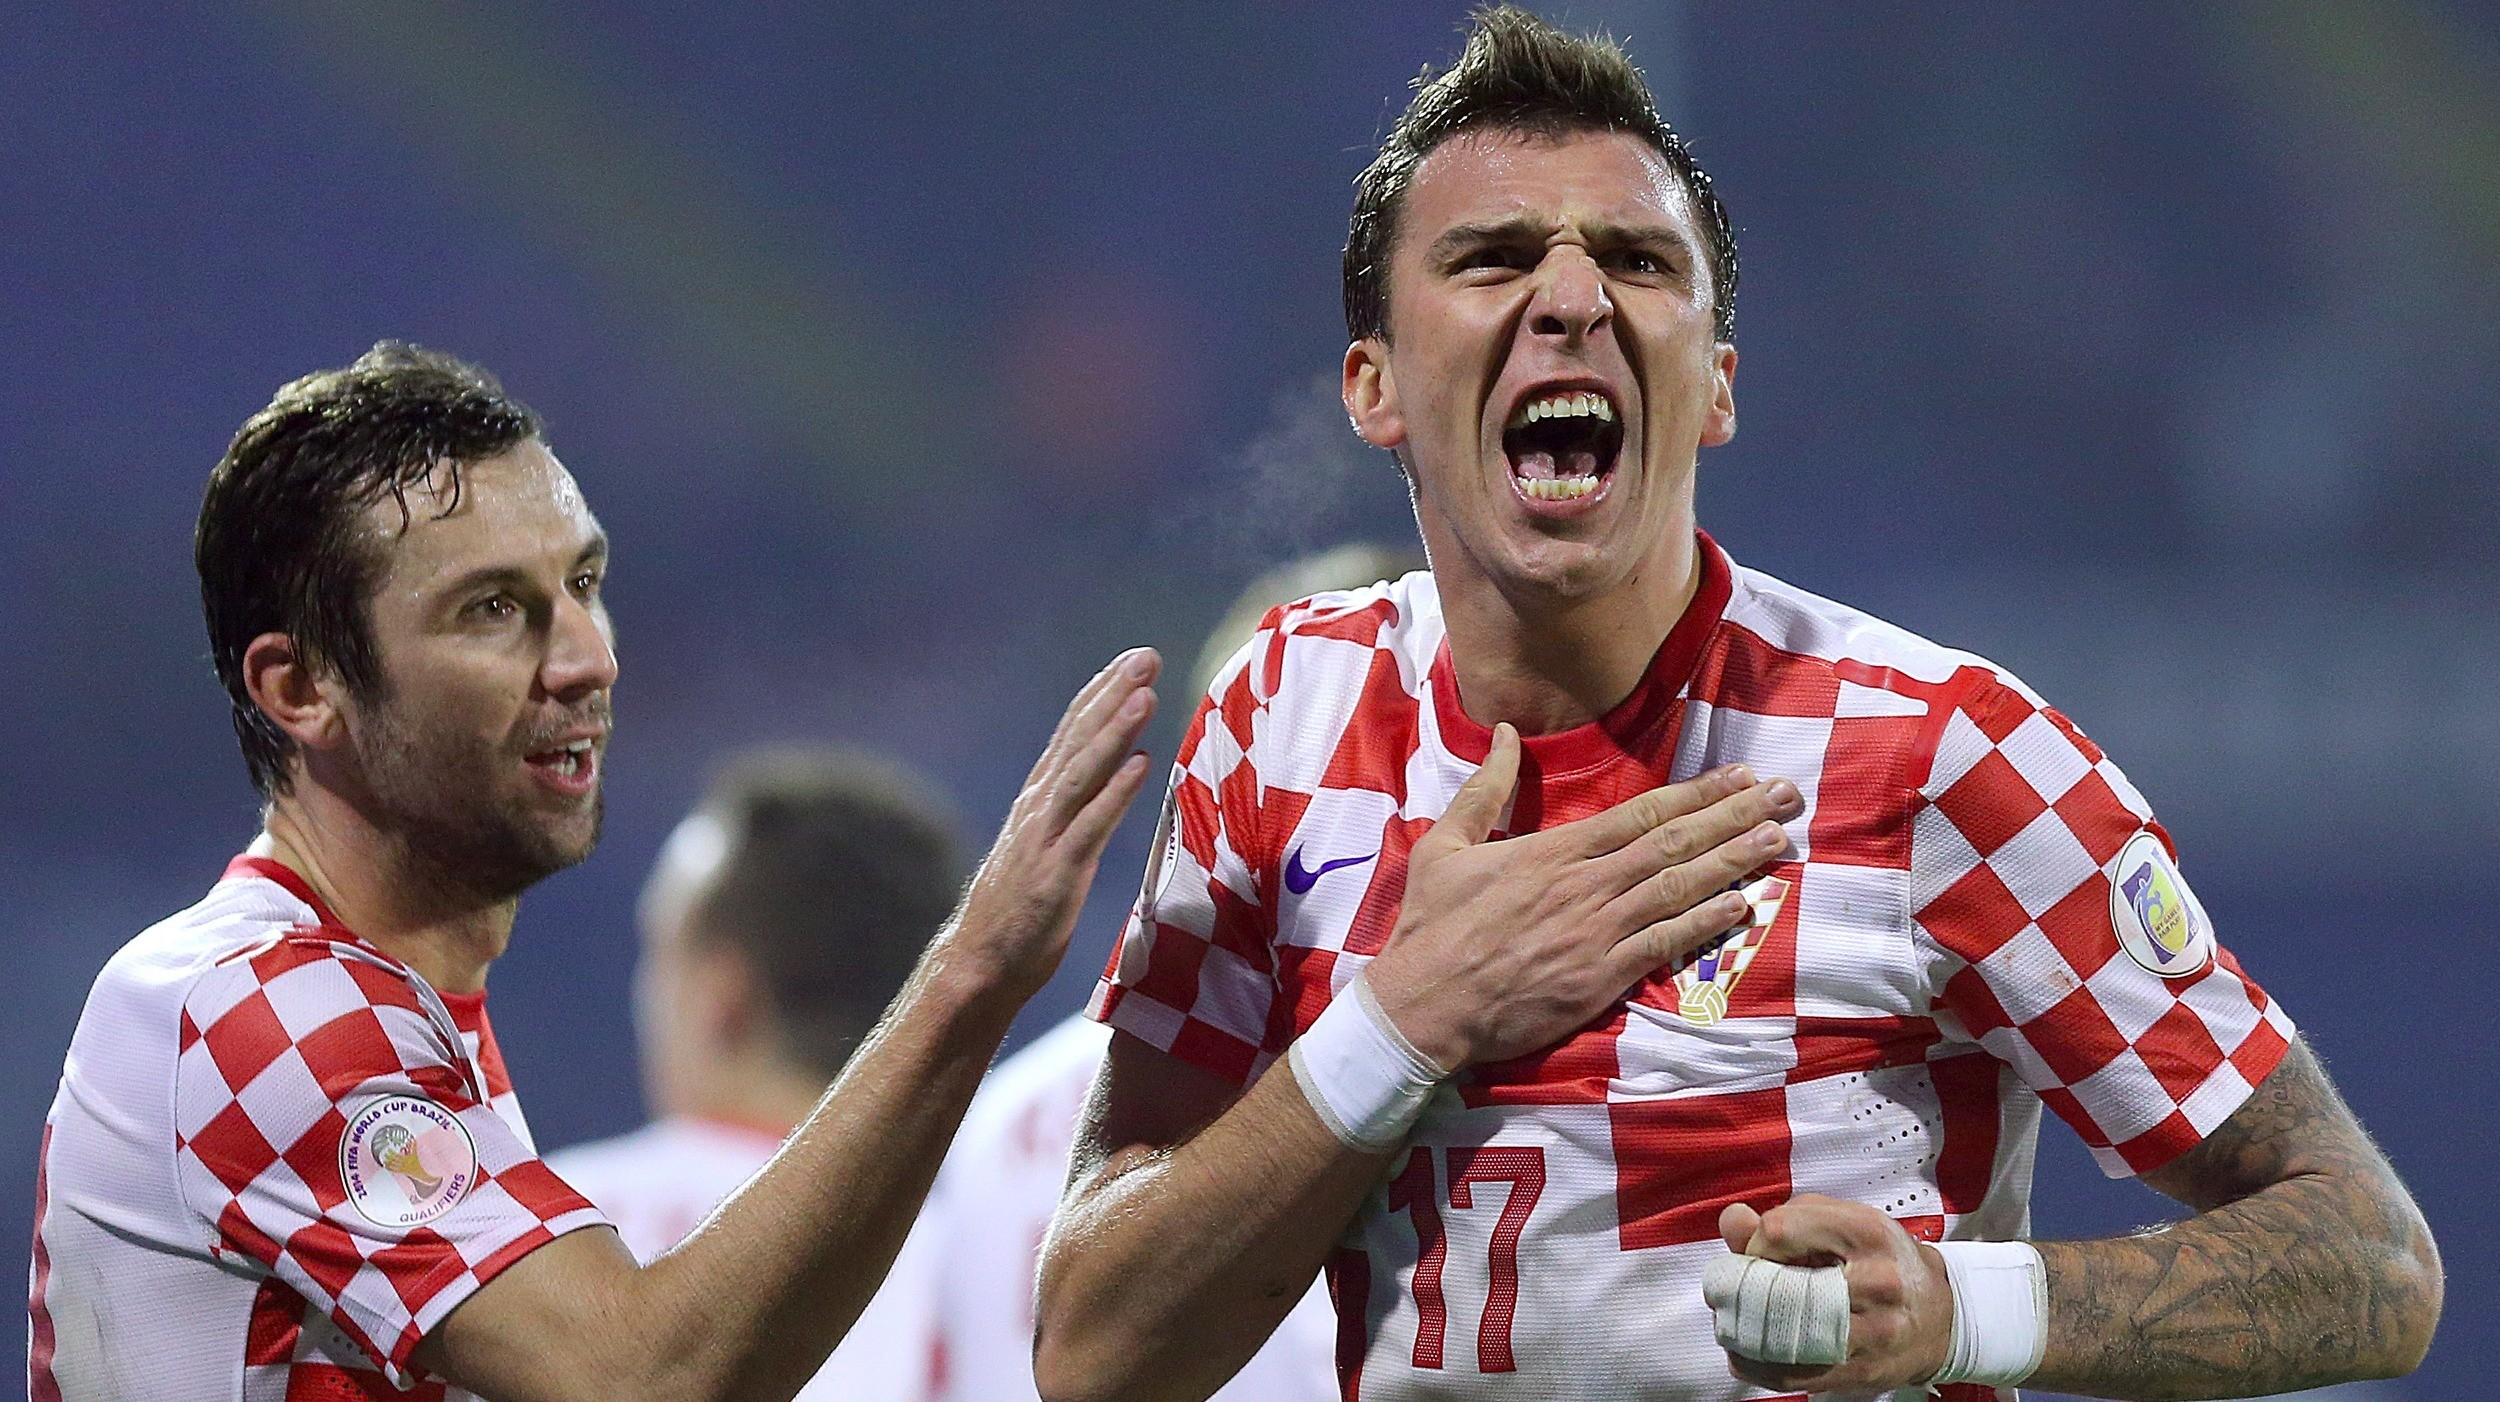 Soccer Iphone Wallpaper Hd Group A Croatia 2014 World Cup Hd Wallpapers